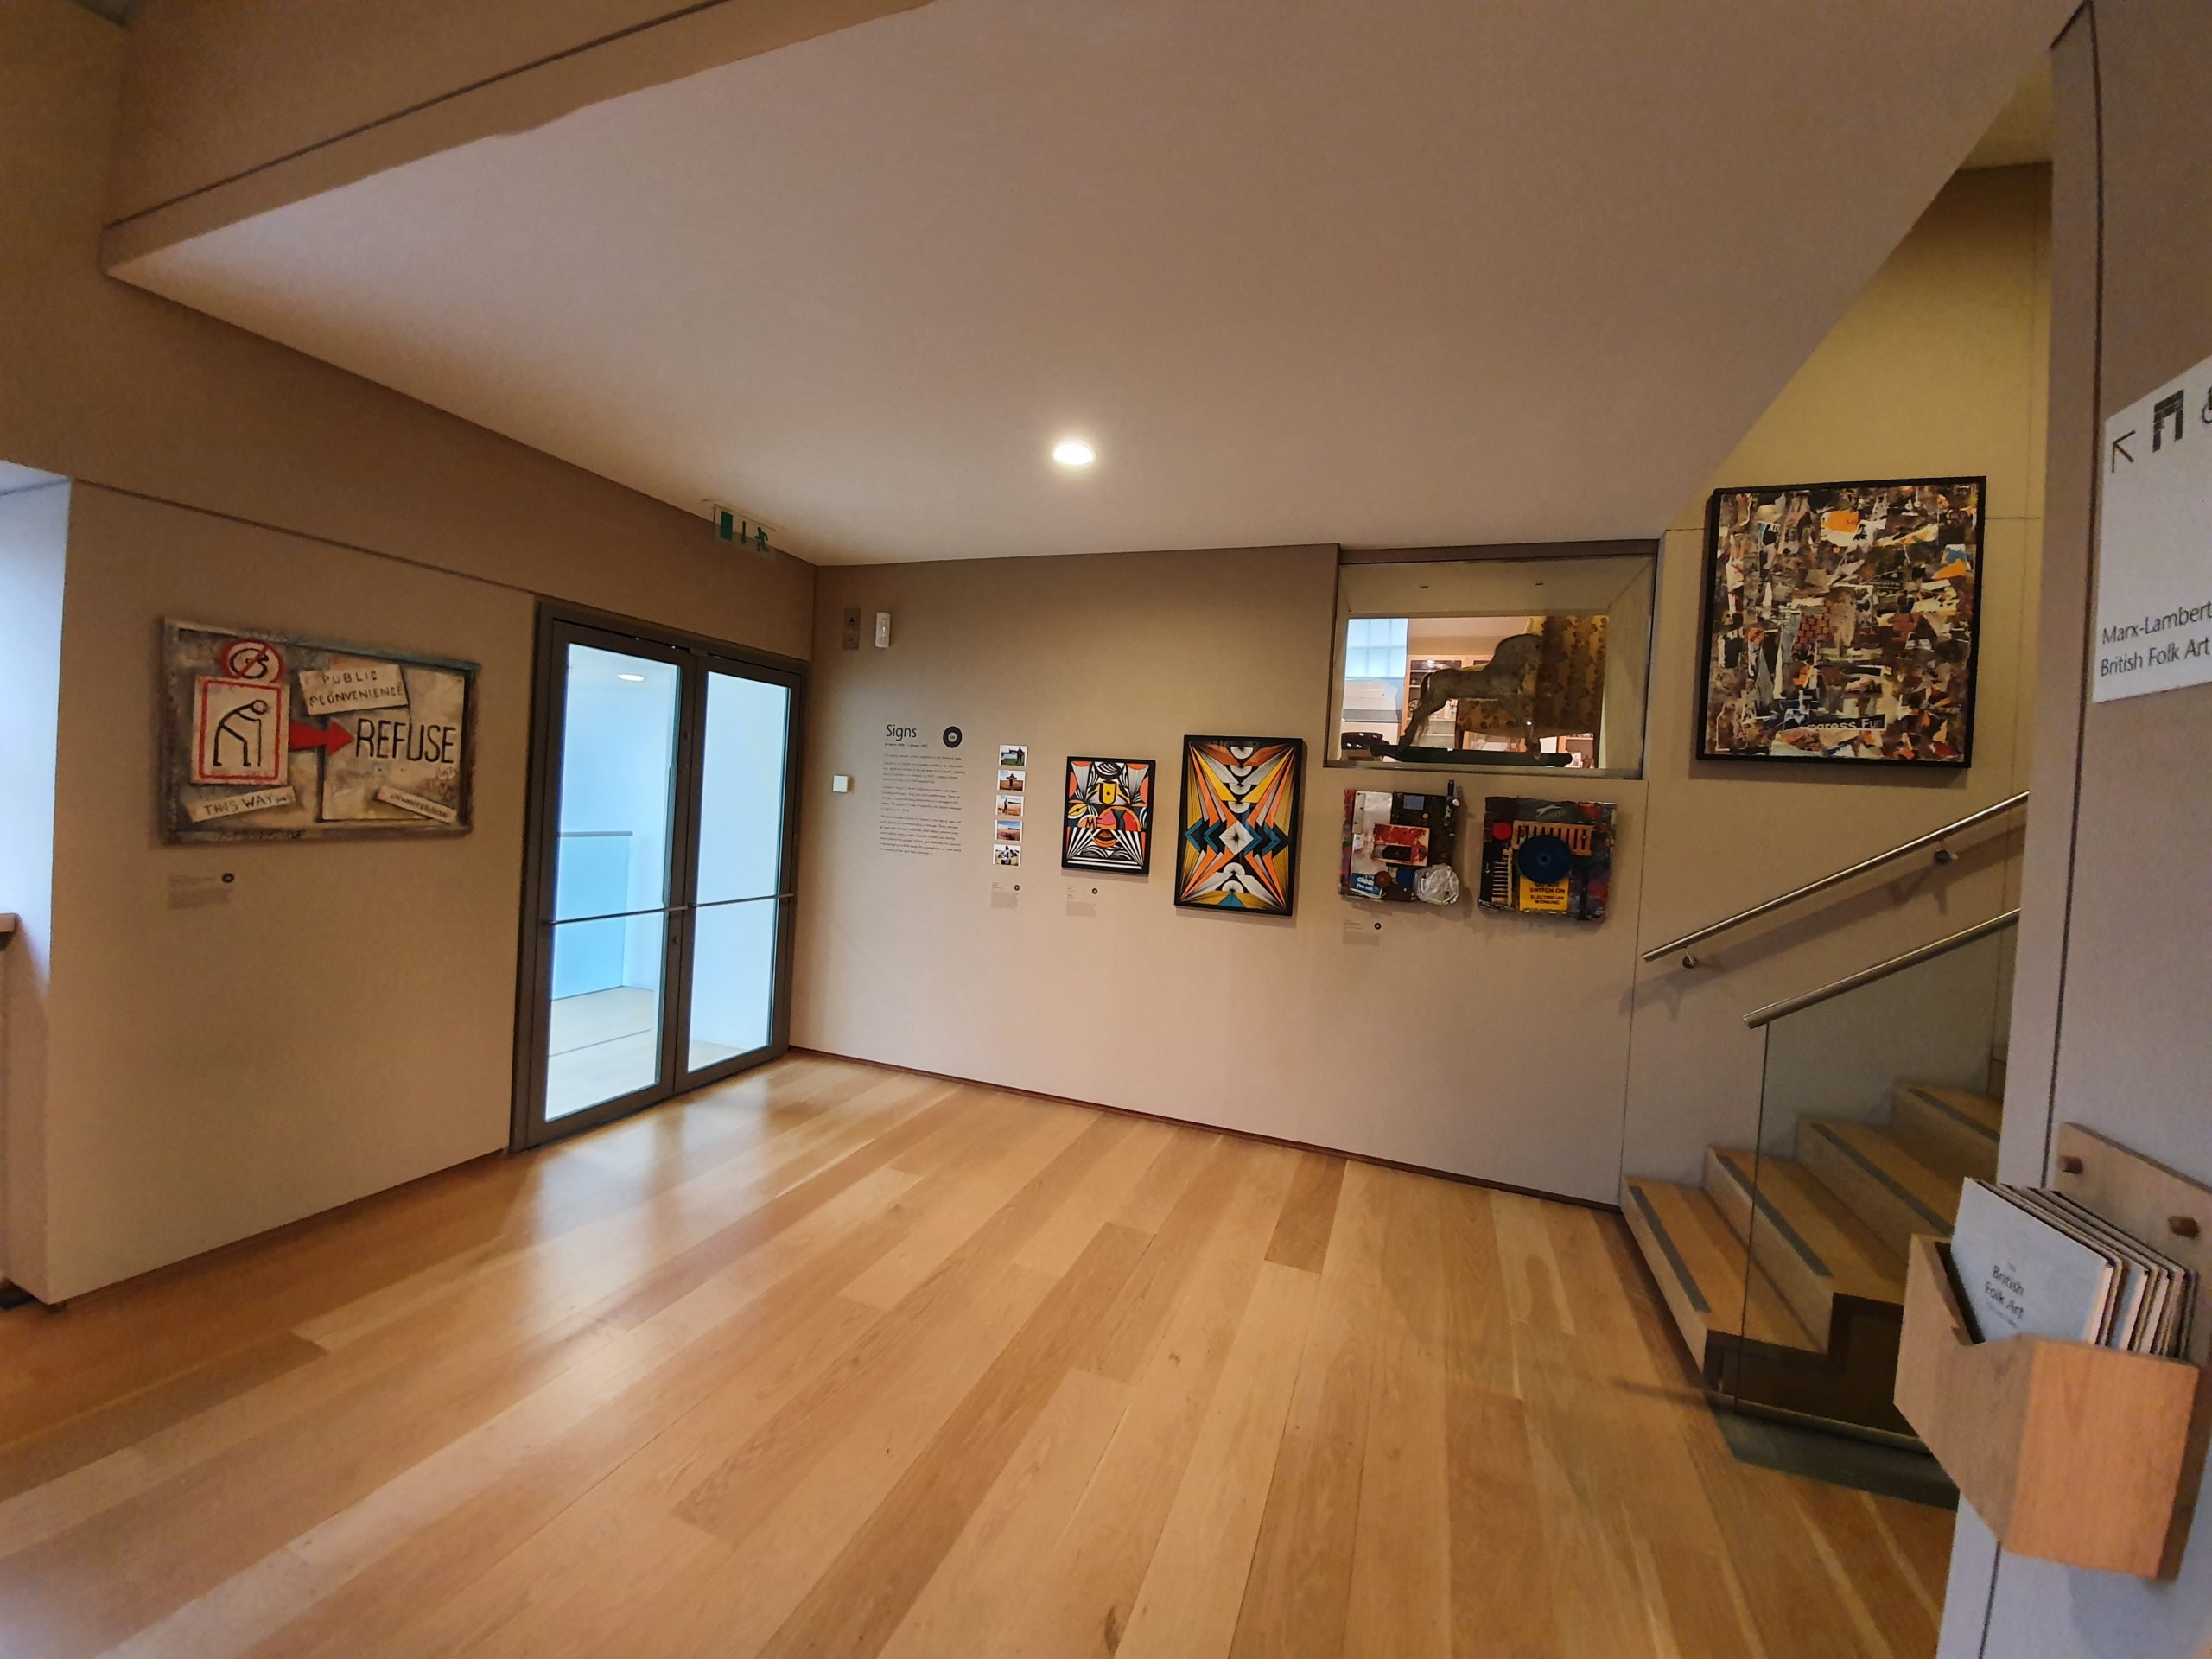 Gallery space with 5 artworks displayed on the walls